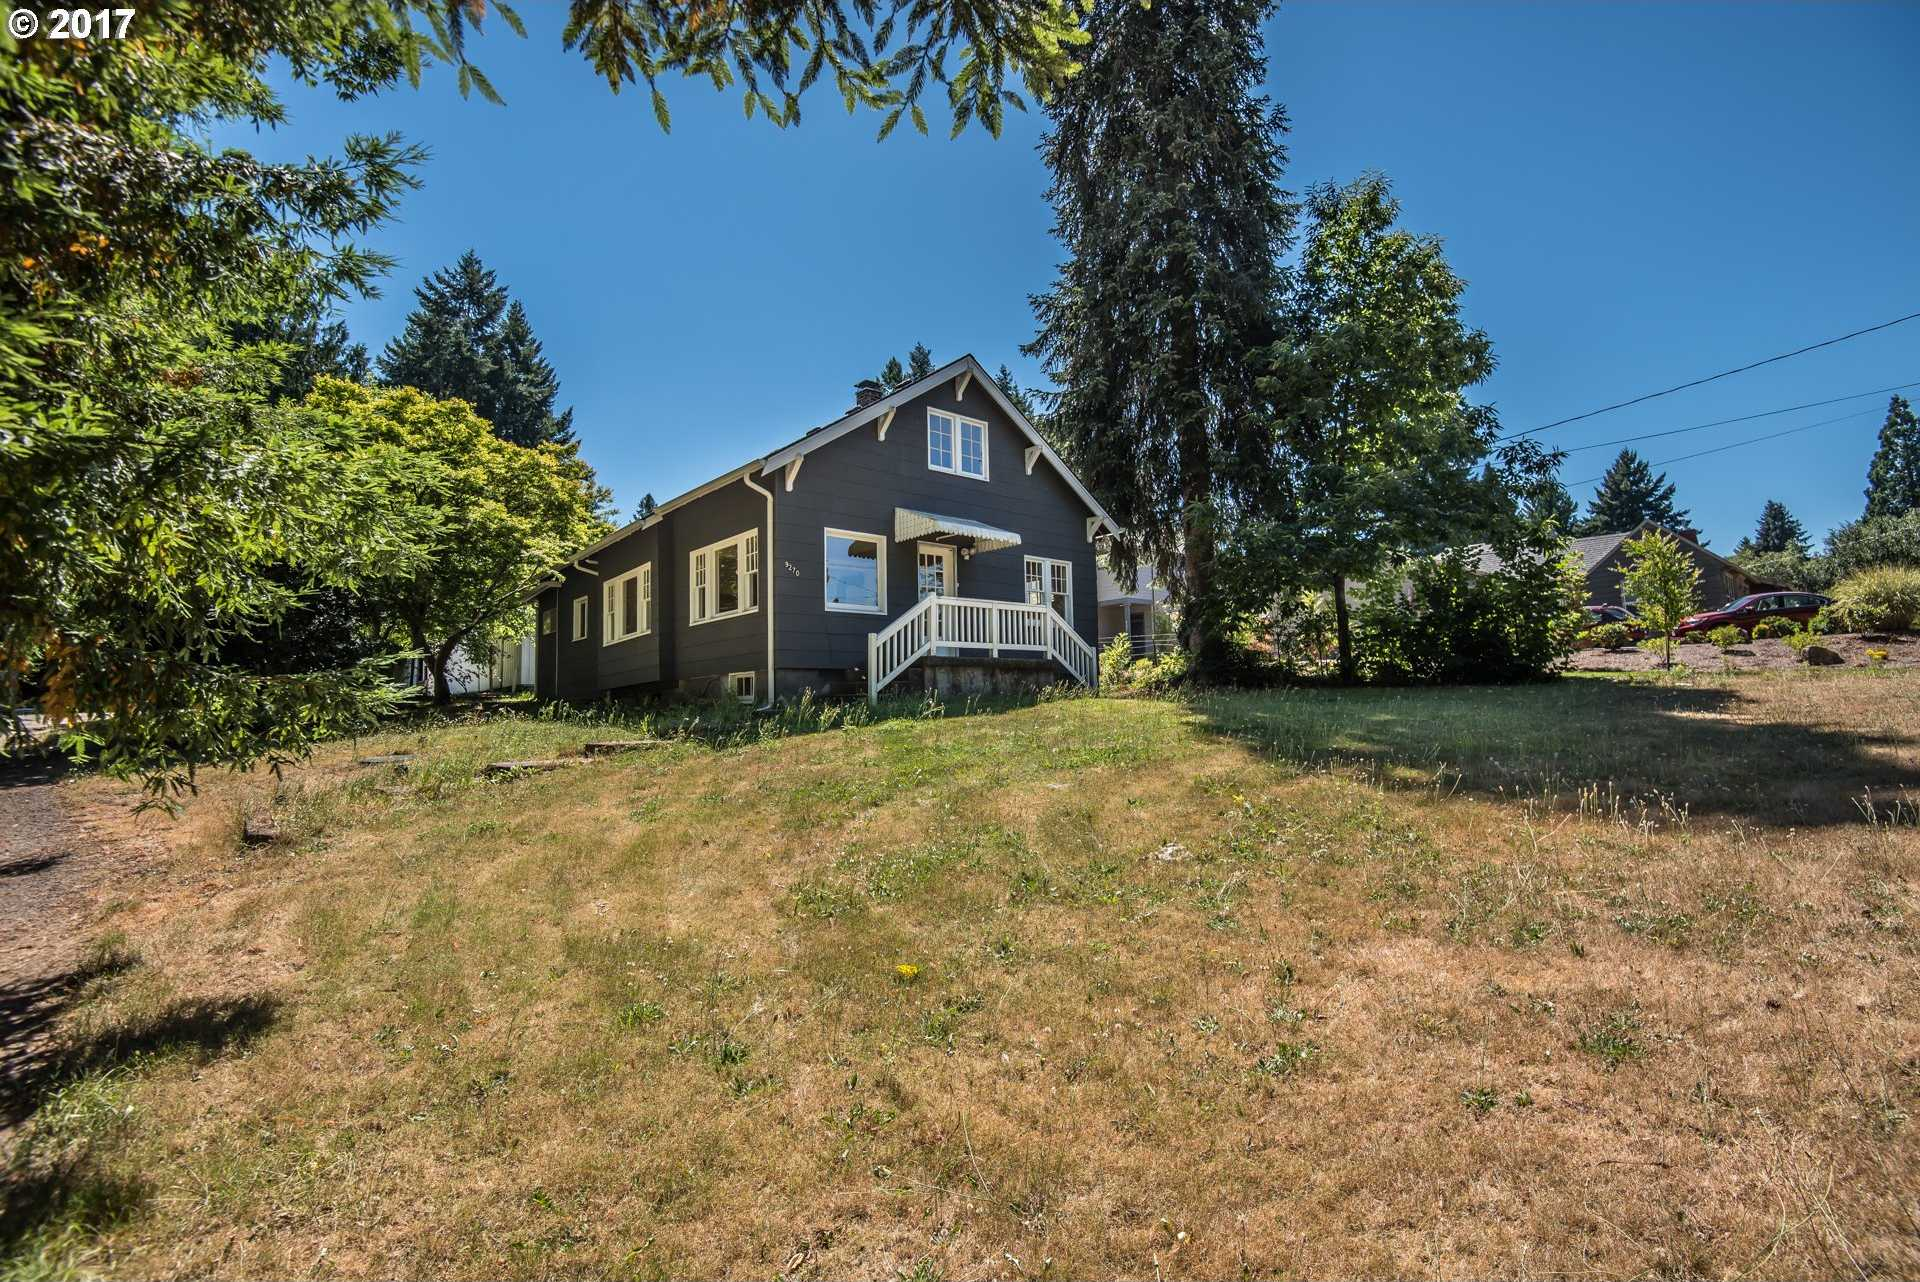 $824,999 - 3Br/2Ba -  for Sale in Edgewood, Tigard